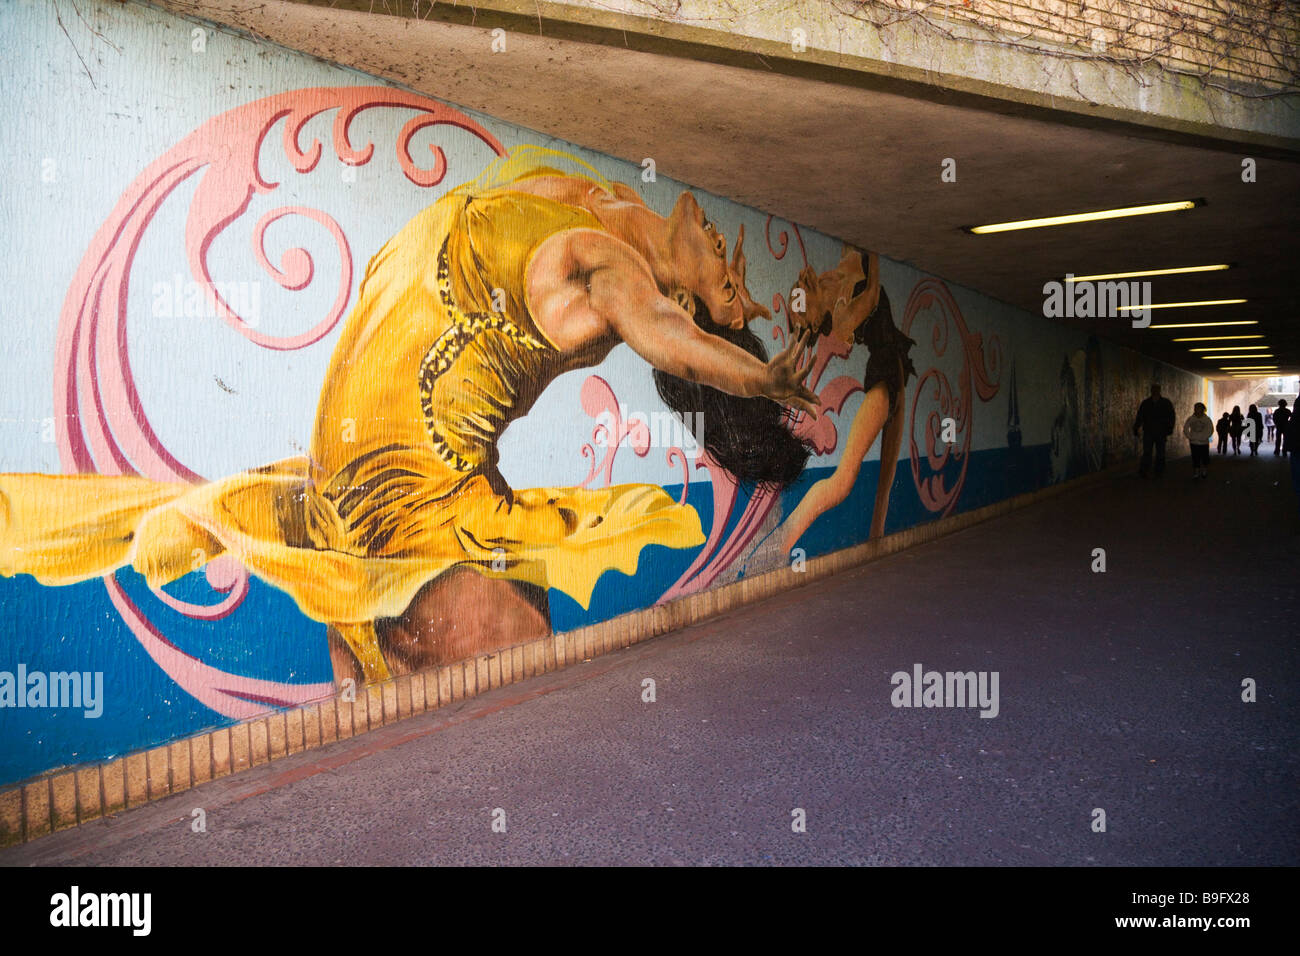 A mural depicting contemporary dance painted on the wall of the pedestrian underpass.  Weymouth seafront. Dorset. - Stock Image